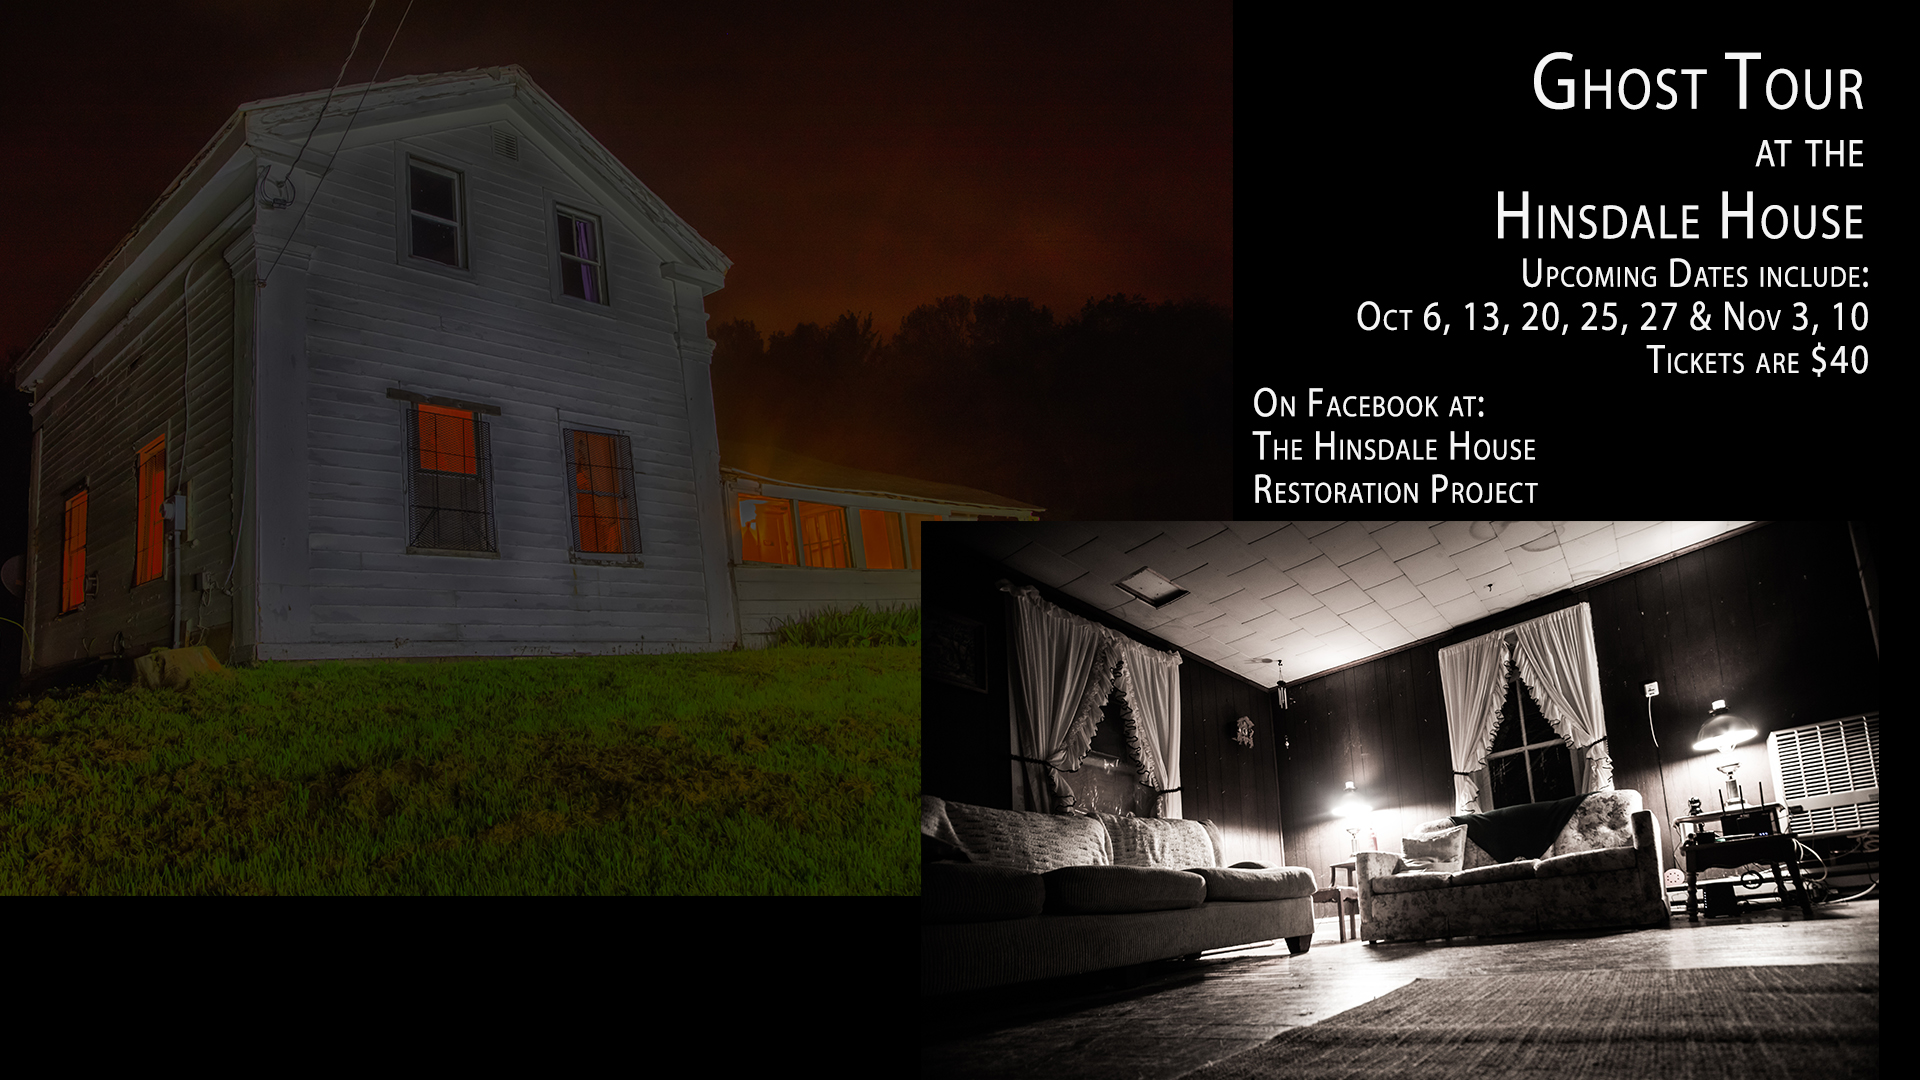 Dates of Public Ghost Tours at the Haunted Hinsdale House